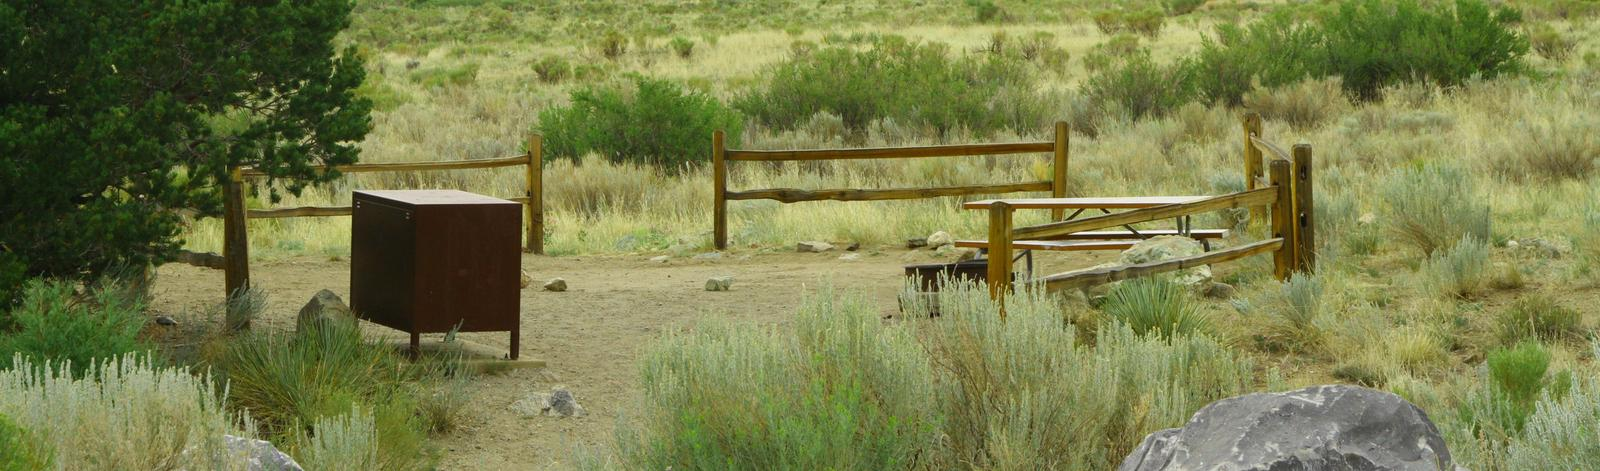 Site 21, Pinon Flats Campground